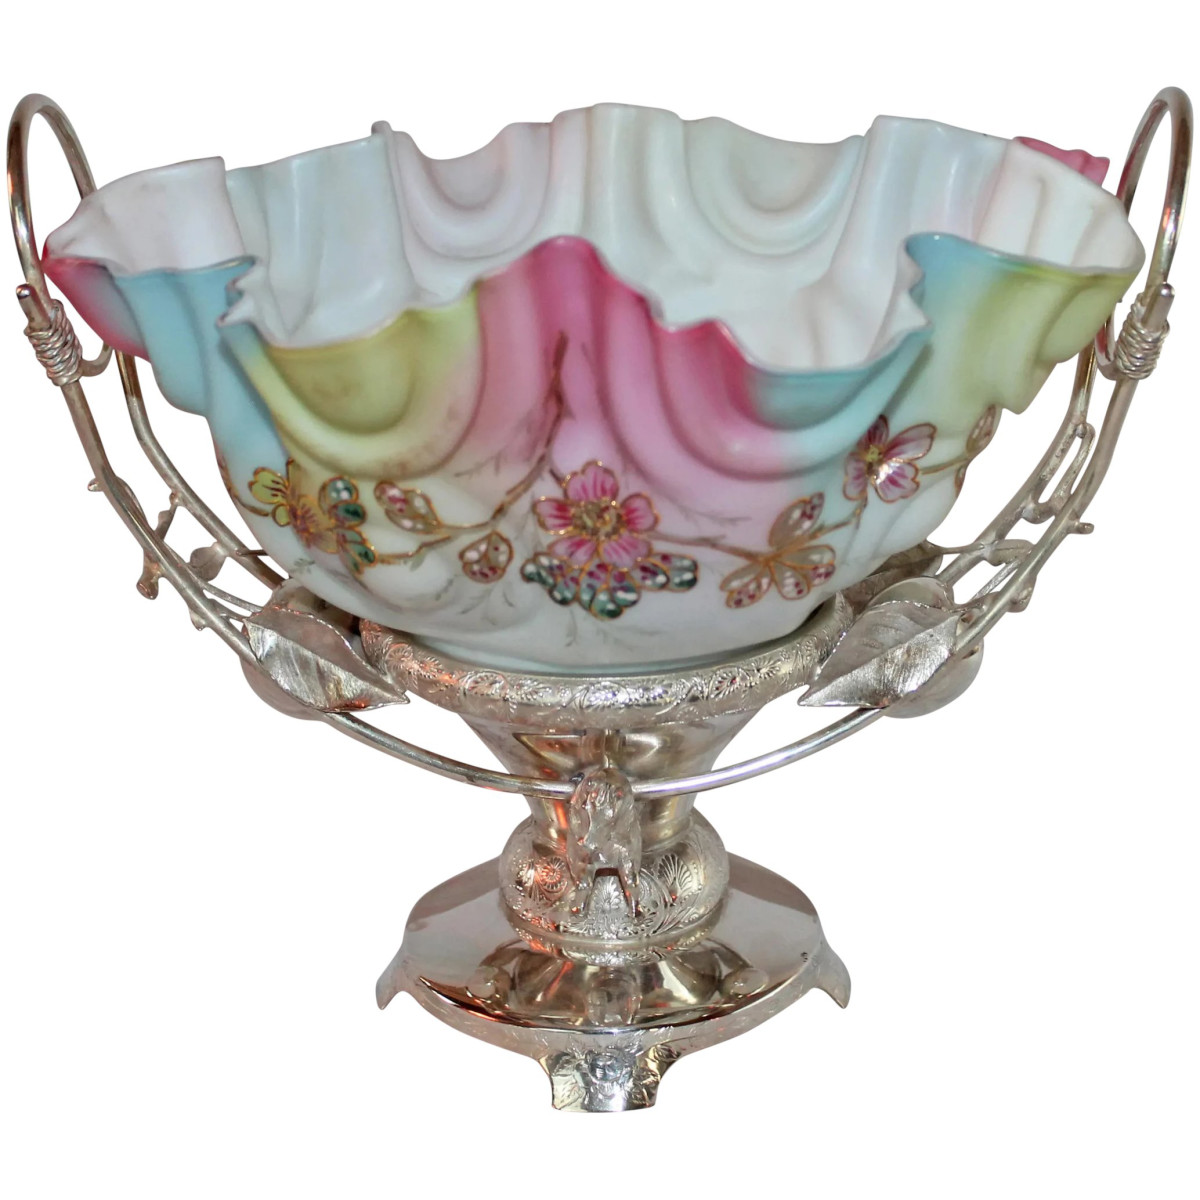 """A rare Victorian horse-and-apple bride's basket made by the Acme Silver Company, circa 1890, with a scalloped rainbow glass hand-enameled bowl, stand features two horse heads (front and back) and apples with leaves on each side of the basket, approx.  10"""" h x 9-1/4"""" w; $4,295."""